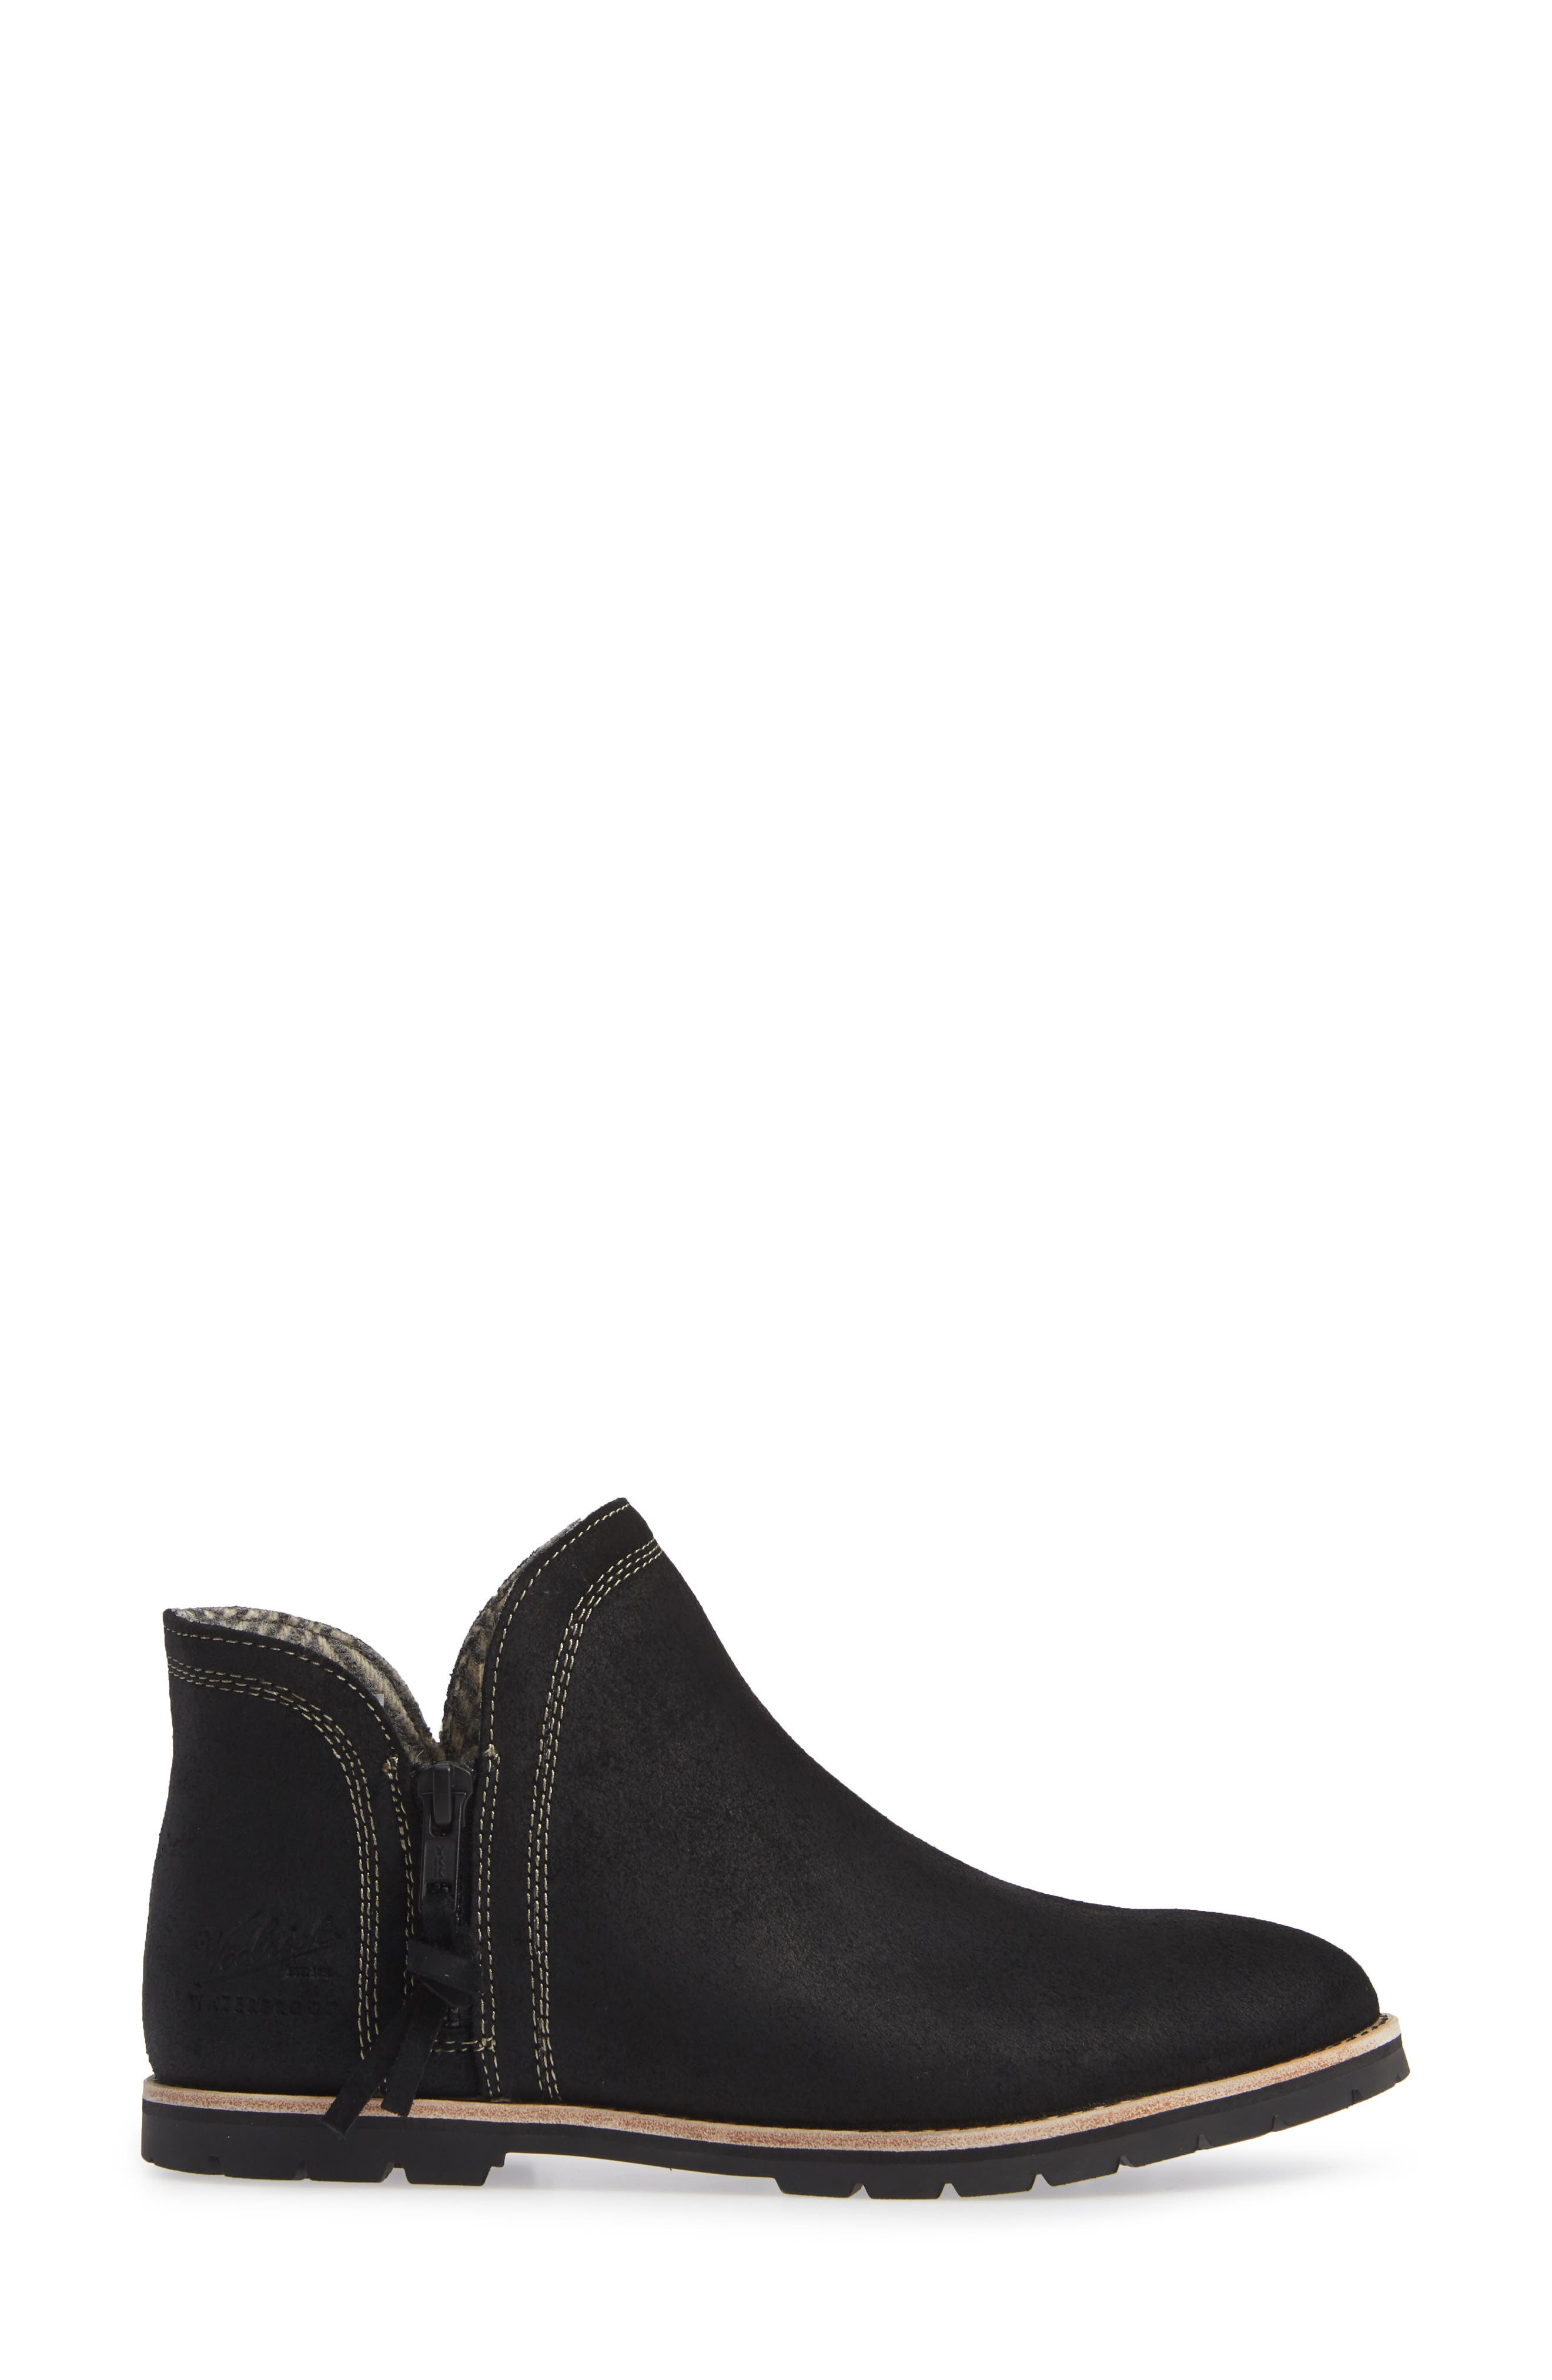 Bly Waterproof Bootie,                             Alternate thumbnail 3, color,                             BLACK SUEDE